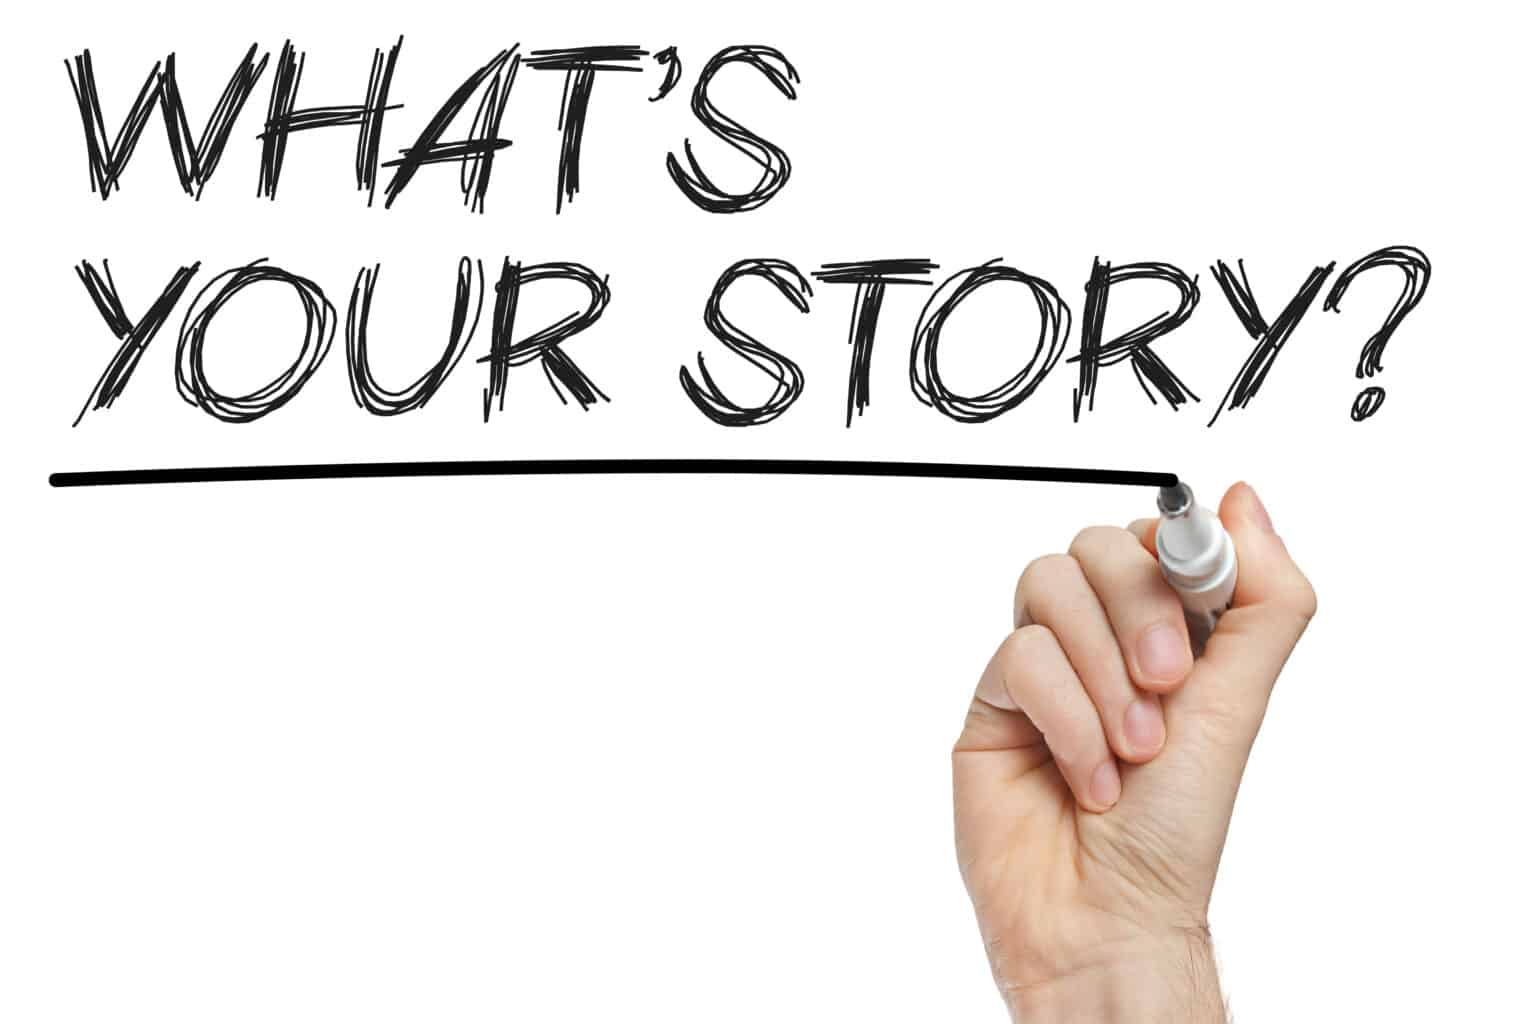 Hand writing what is your story on whiteboard